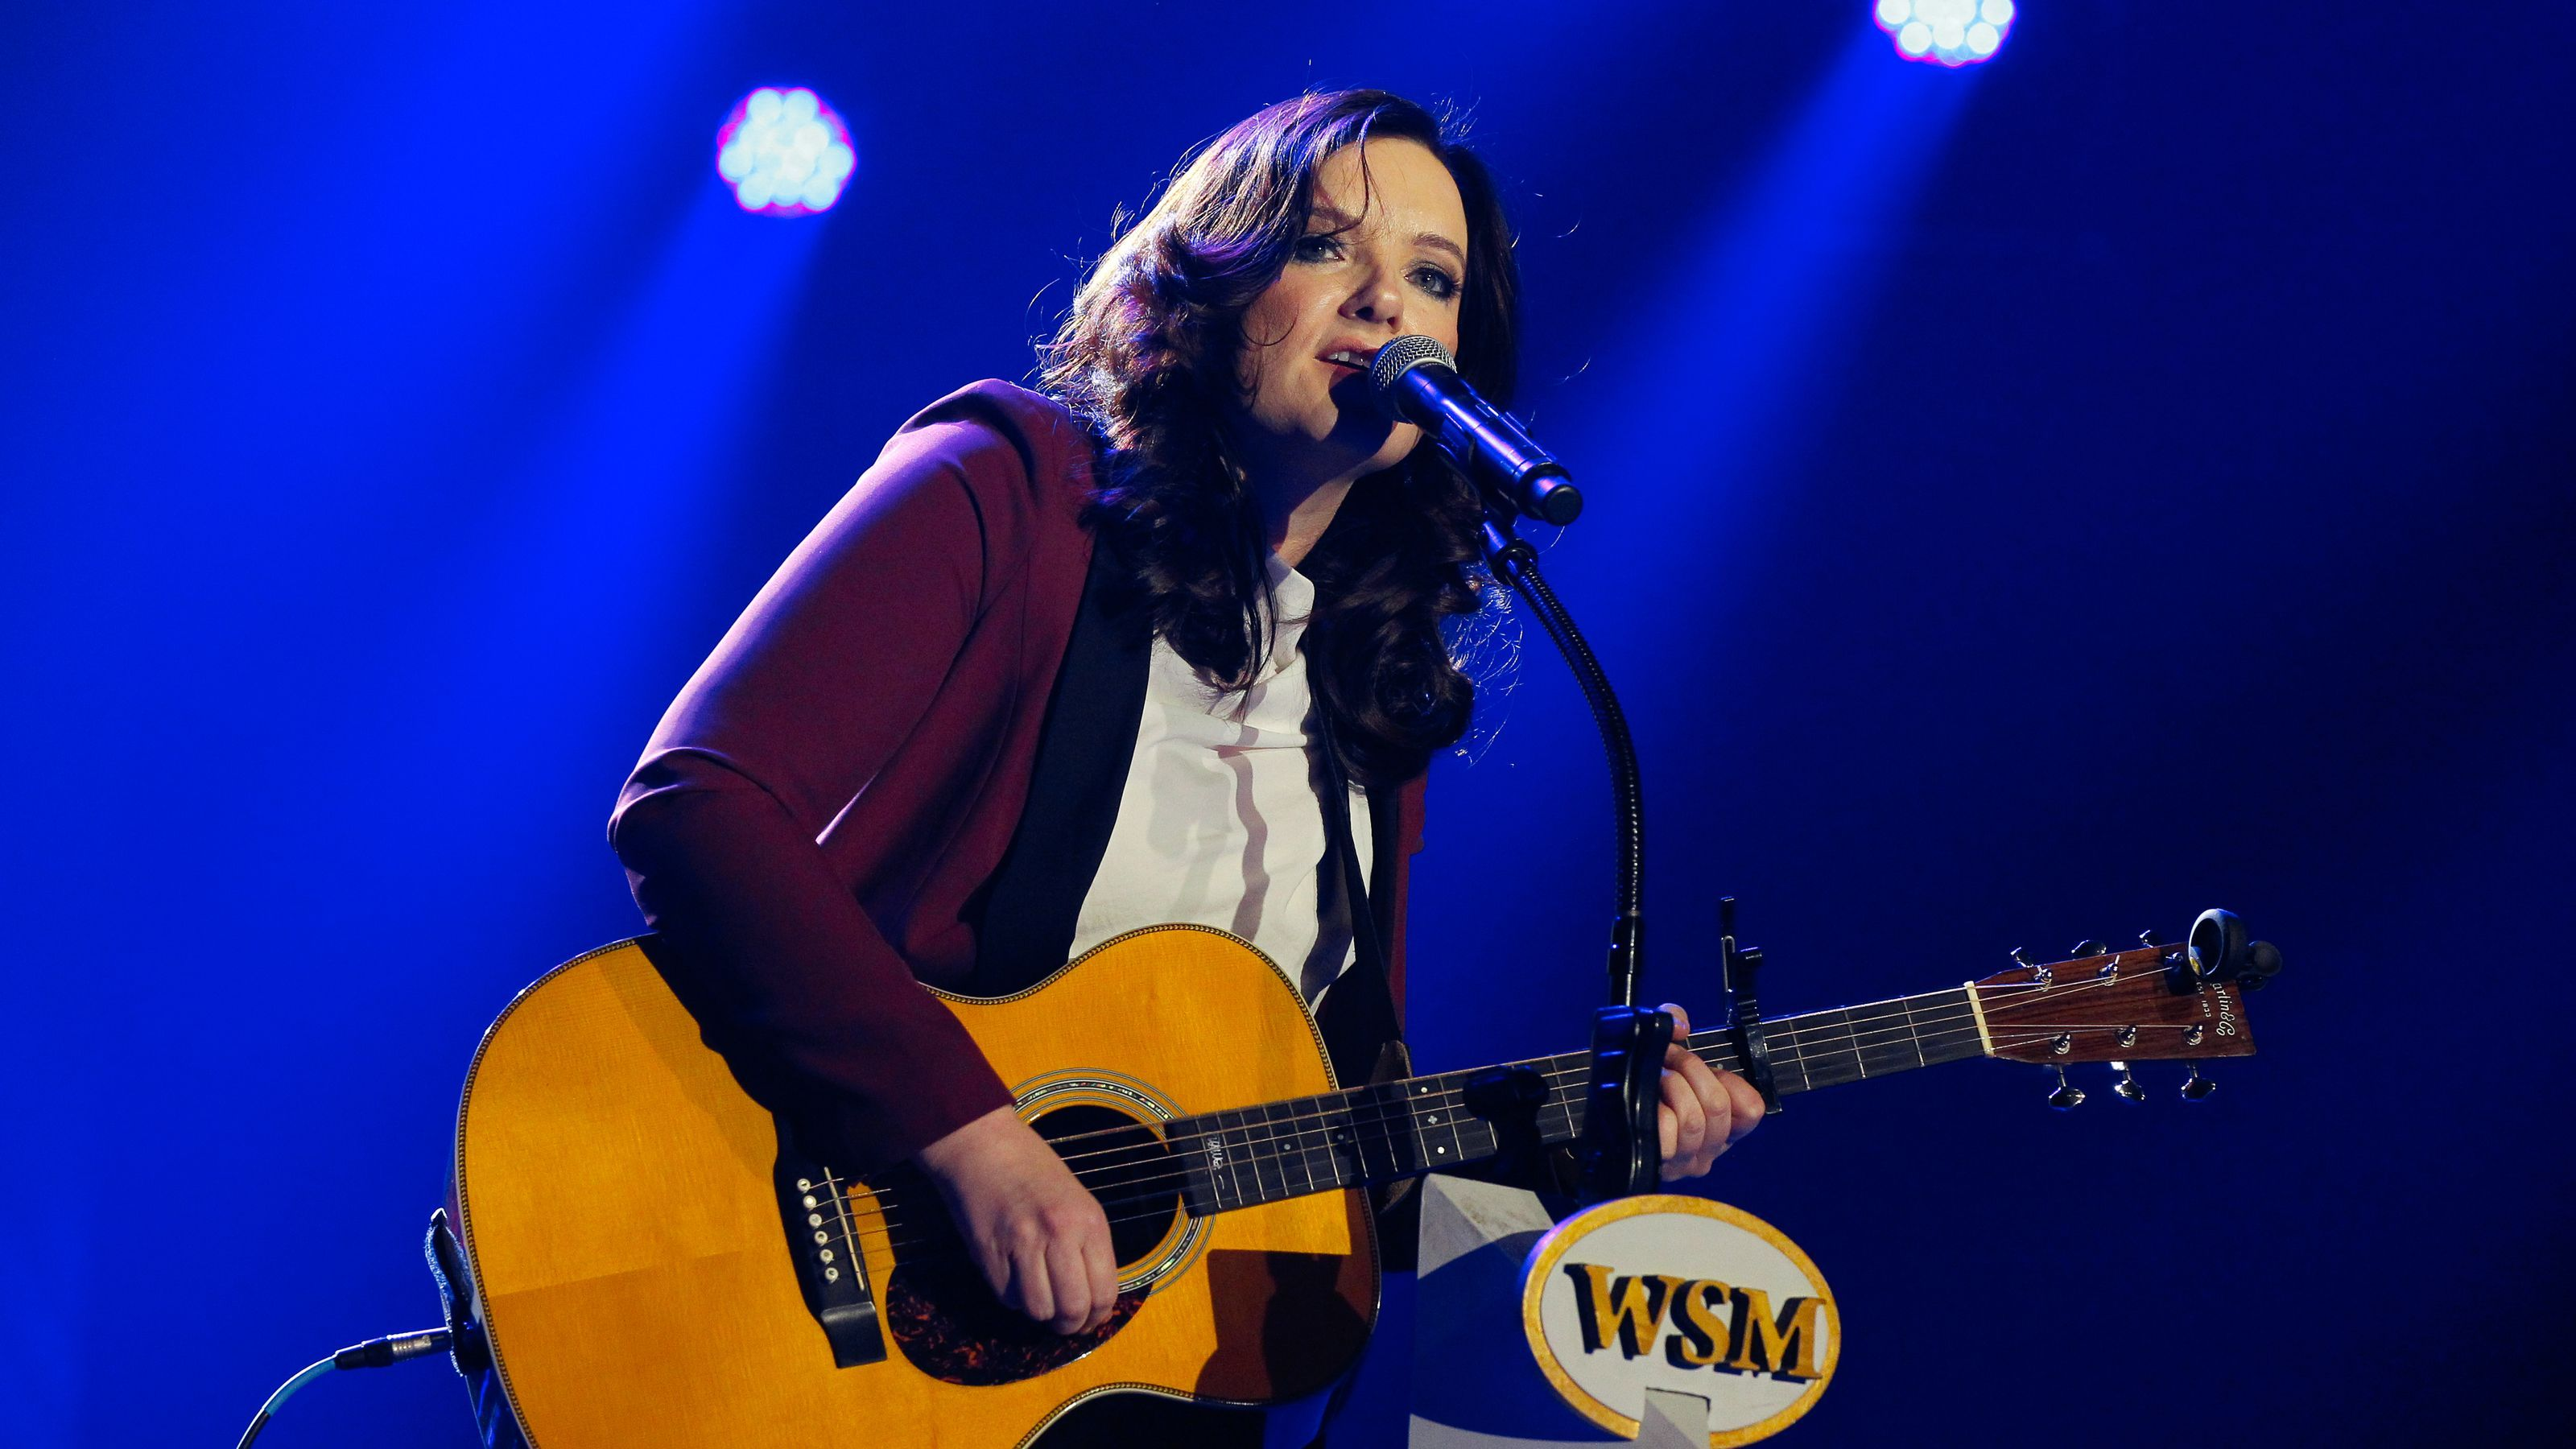 Brandy Clark, opening for #AlanJackson on January 9th at the #USF Sun Dome, has recently been nominated for a #GrammyAward!